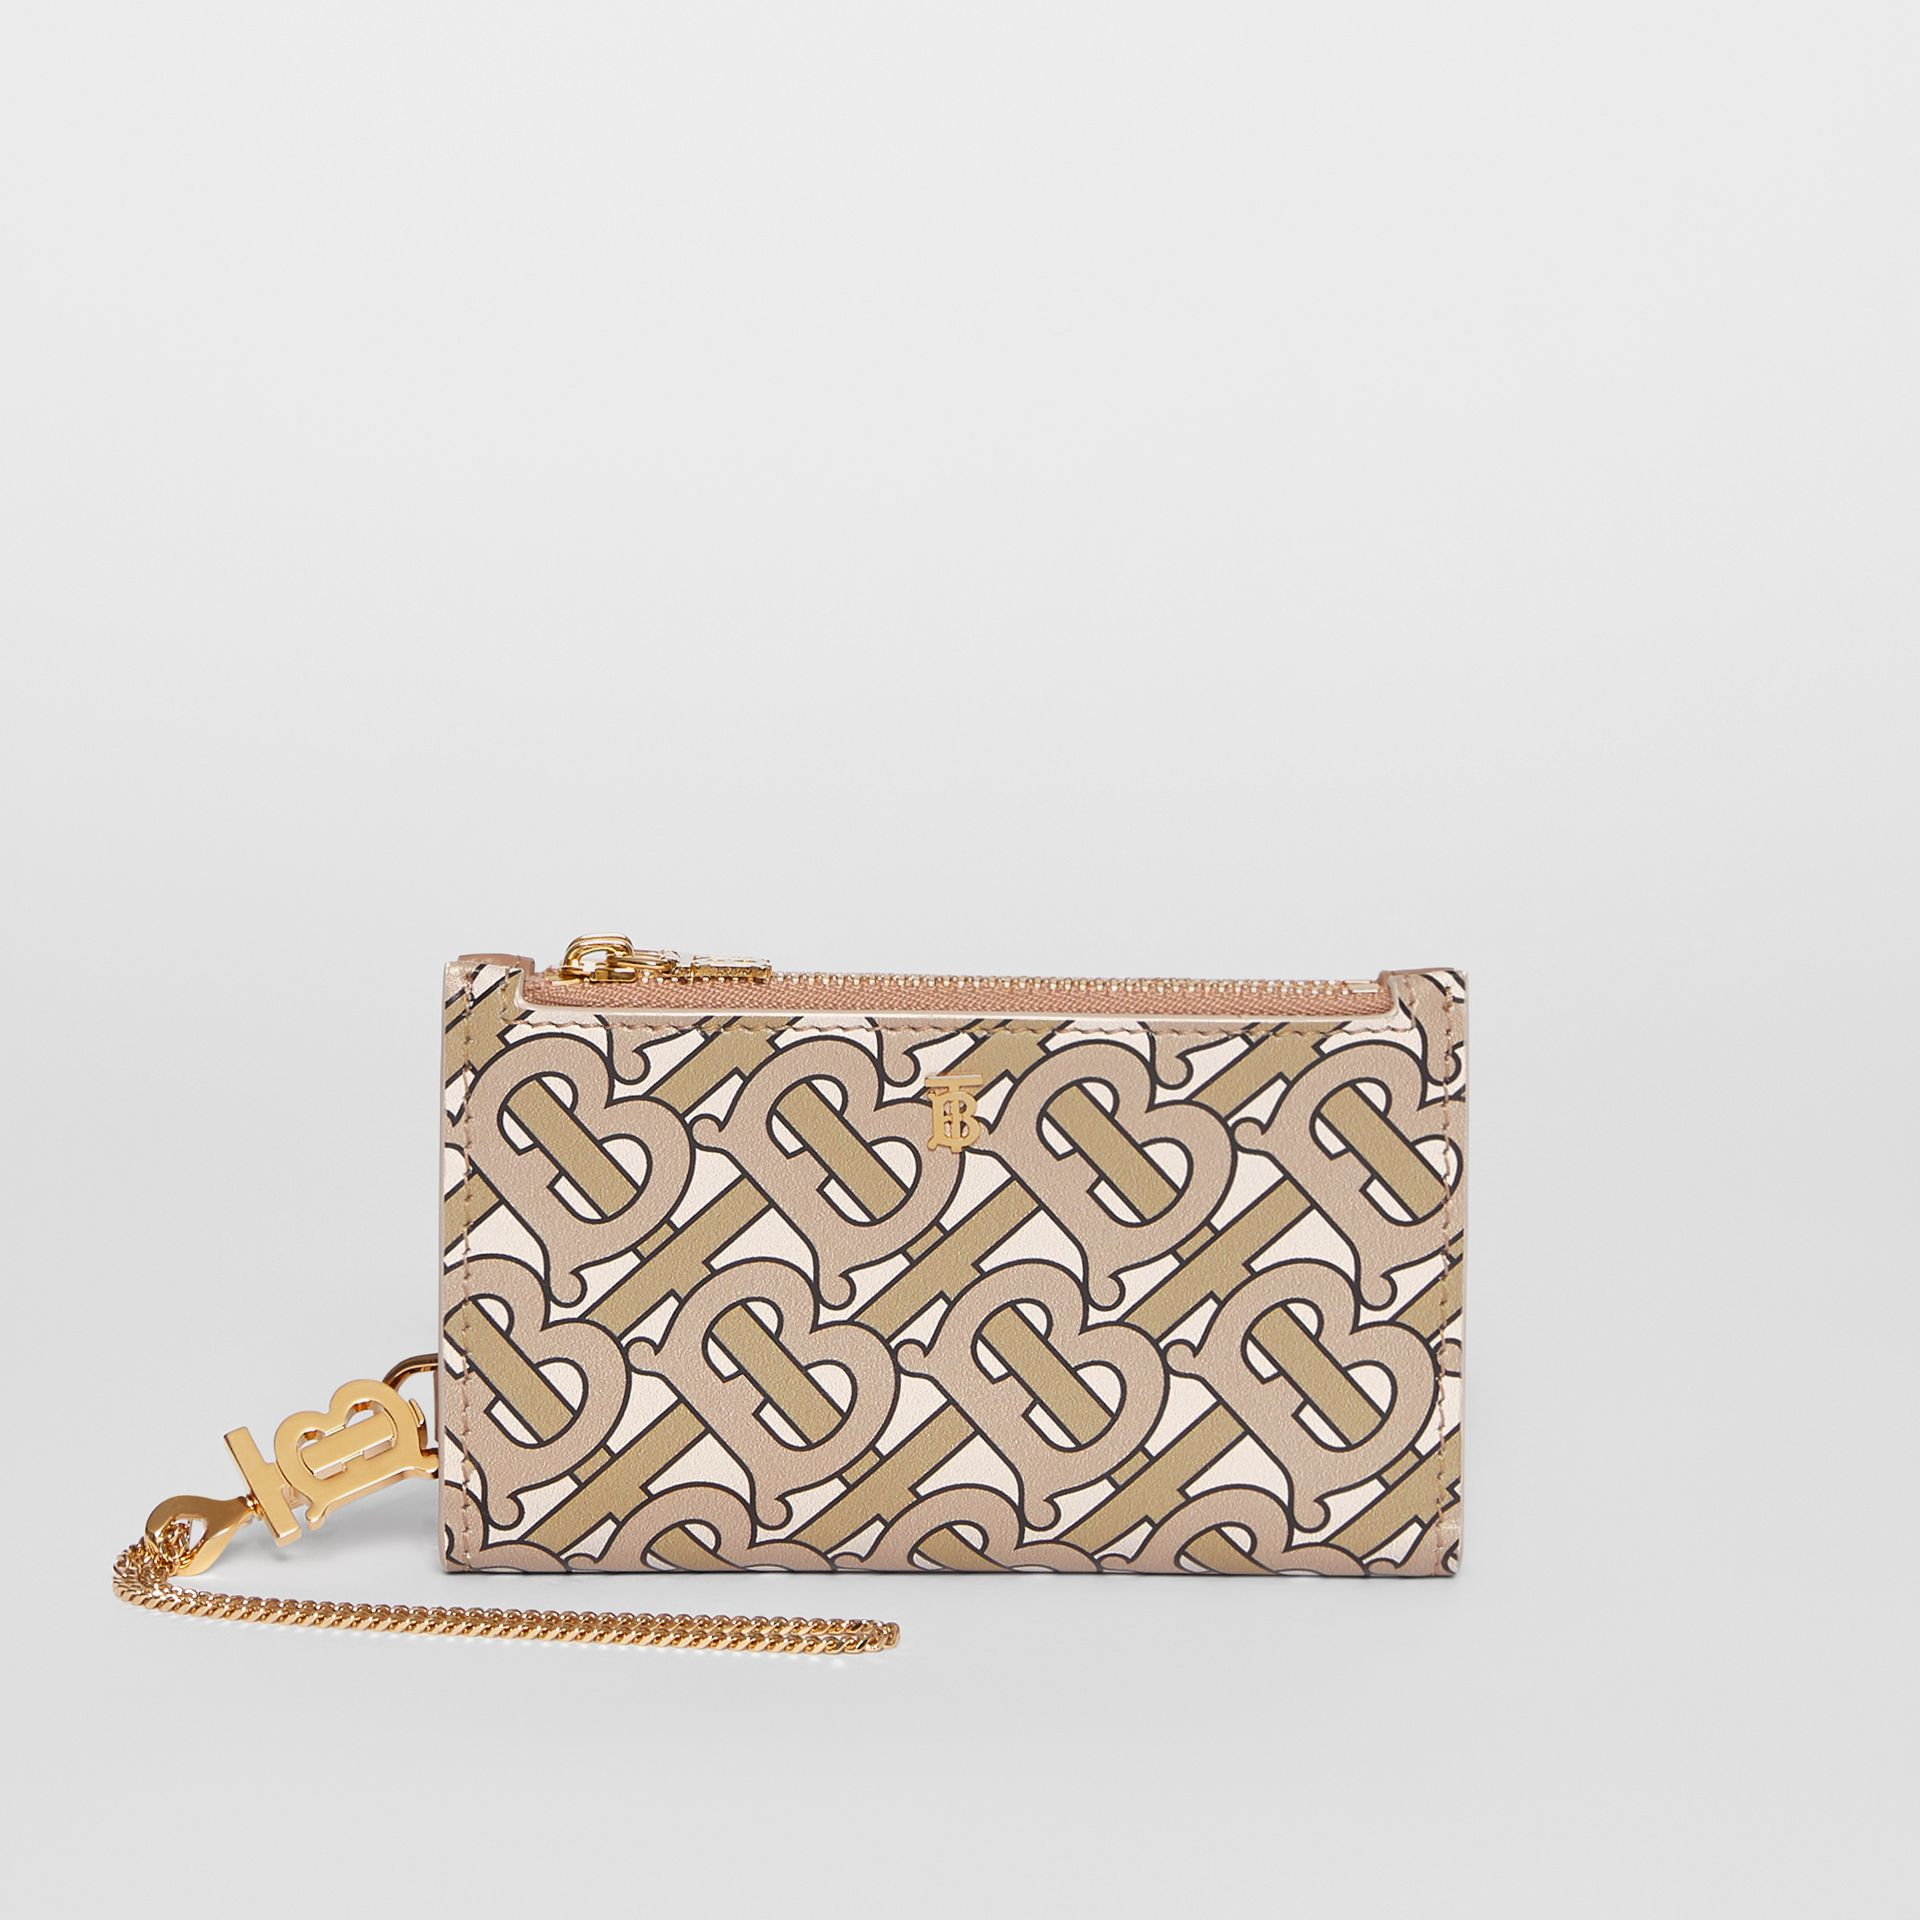 Monogram Motif Leather Wallet with Detachable Strap in Beige - Women | Burberry - gallery image 7